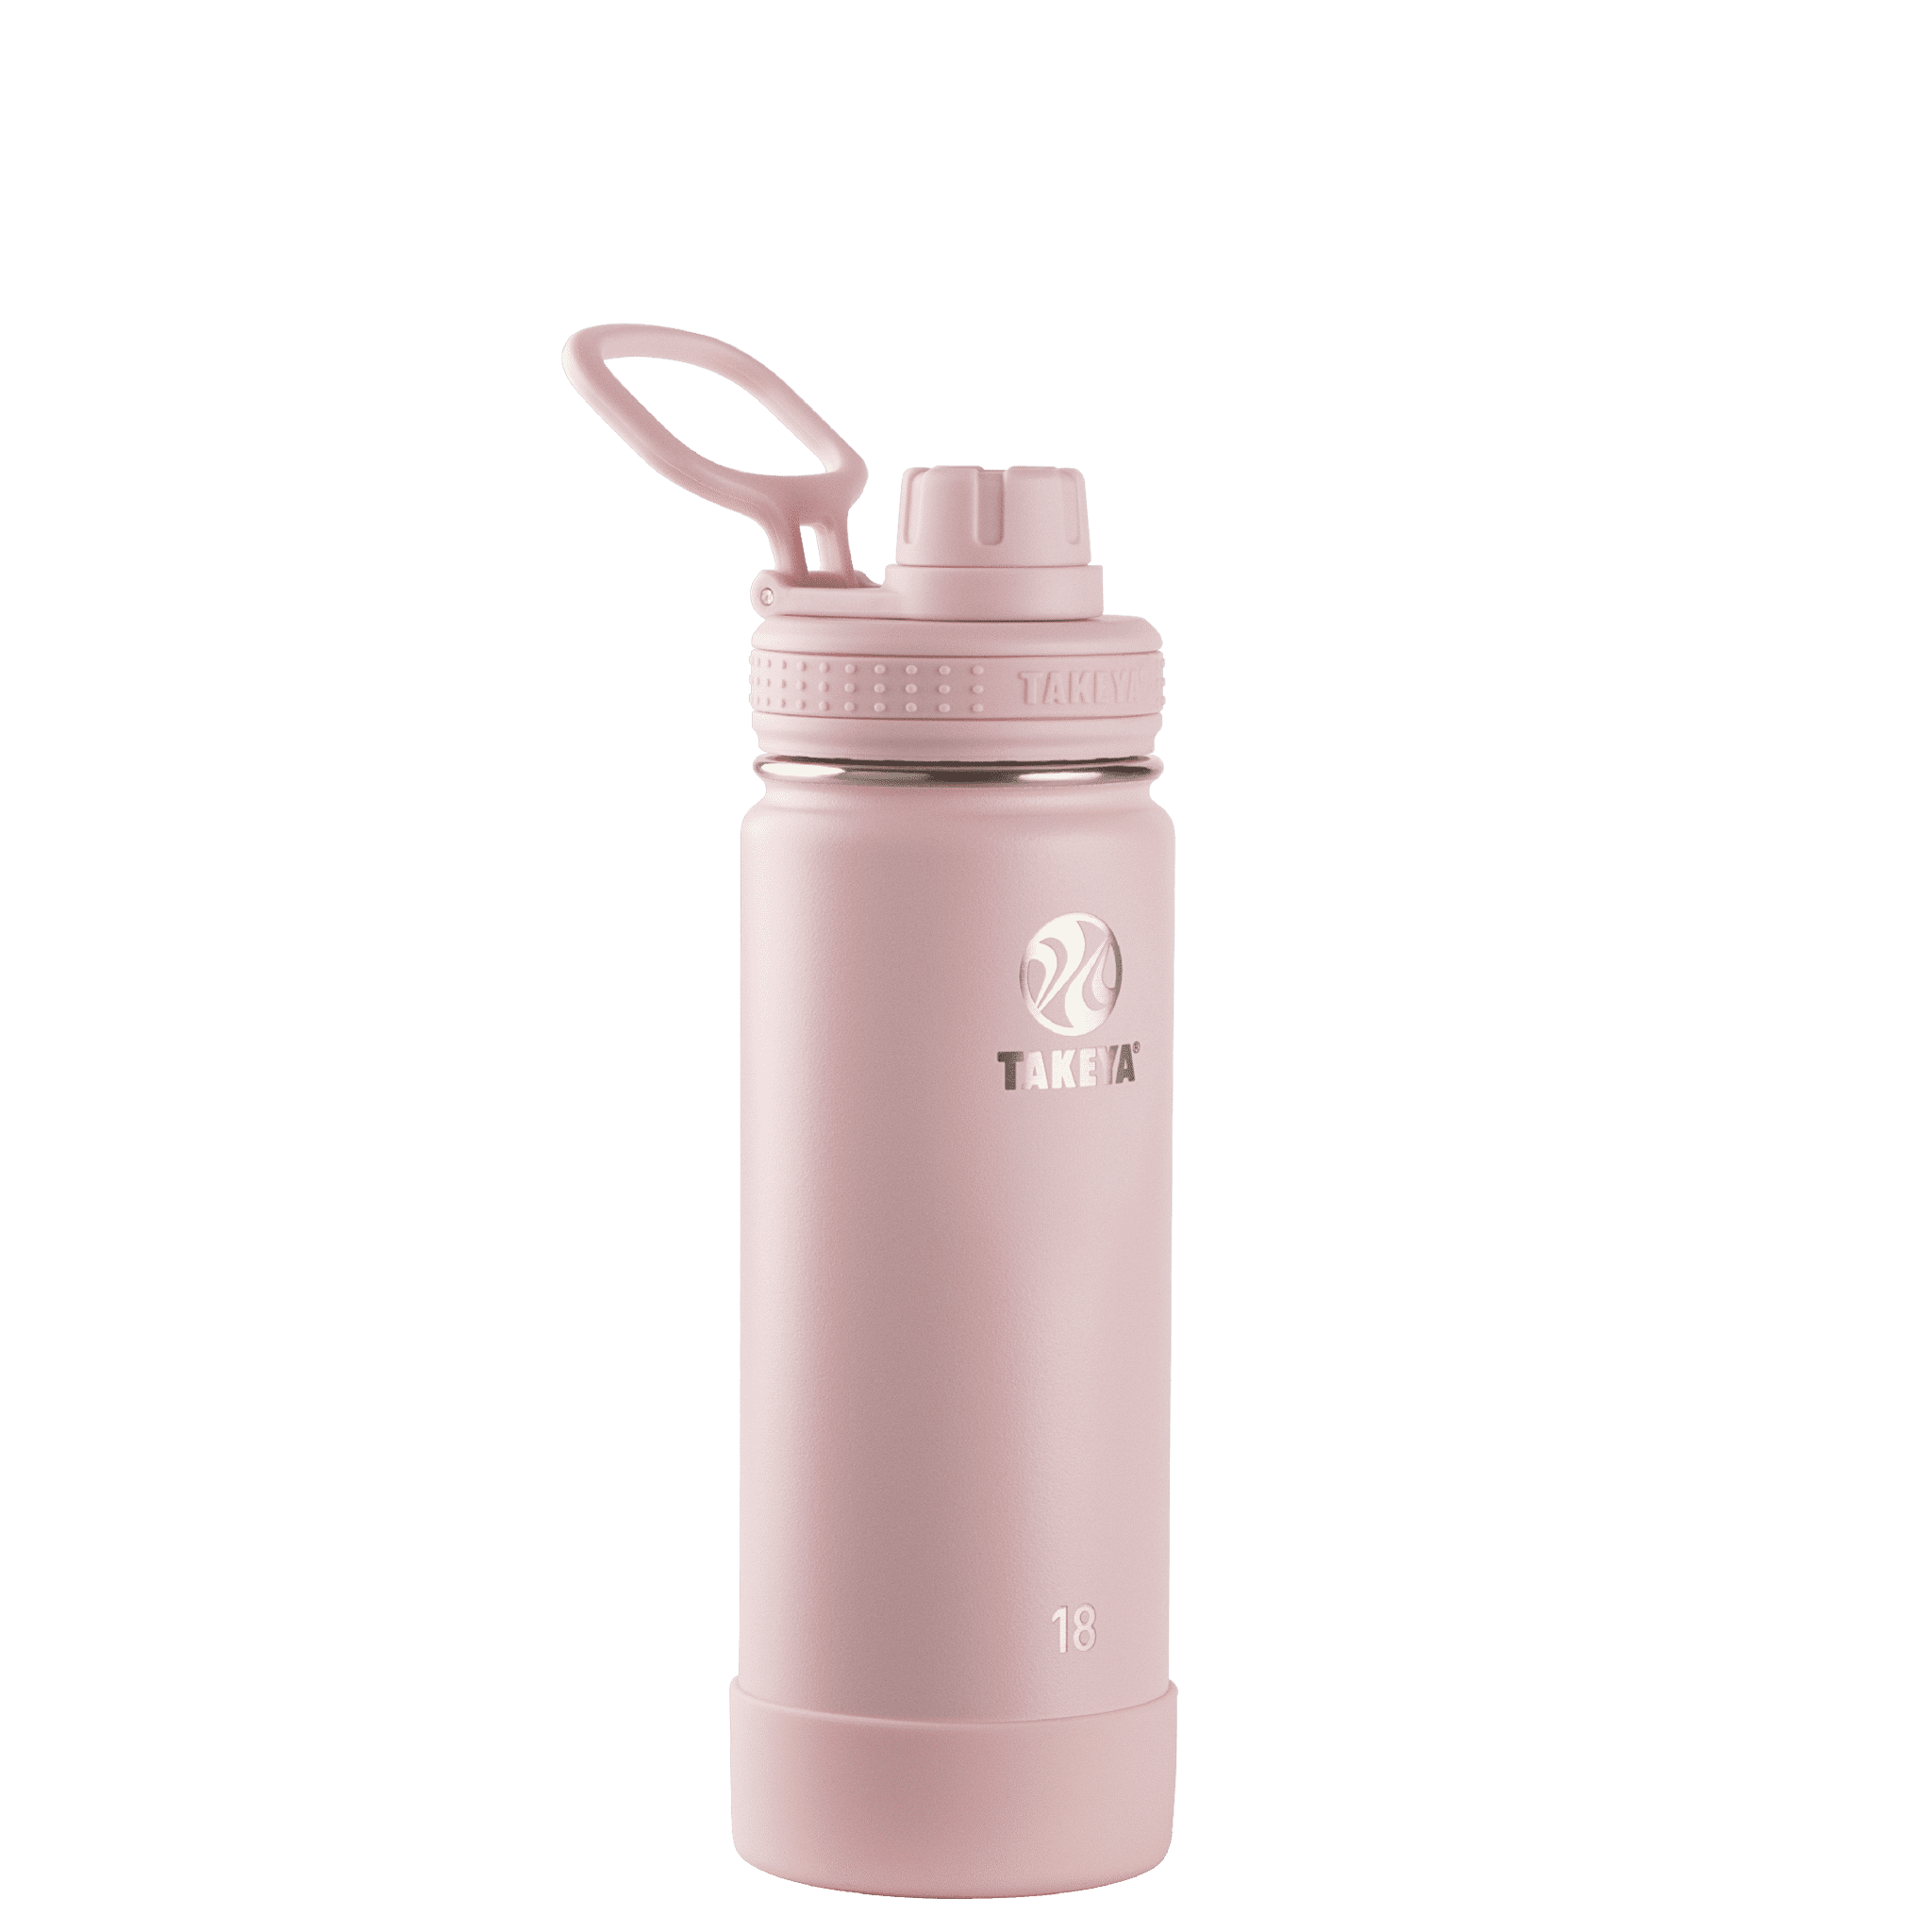 Takeya Actives Stainless Steel Water Bottle w/Spout lid, 18oz Blush